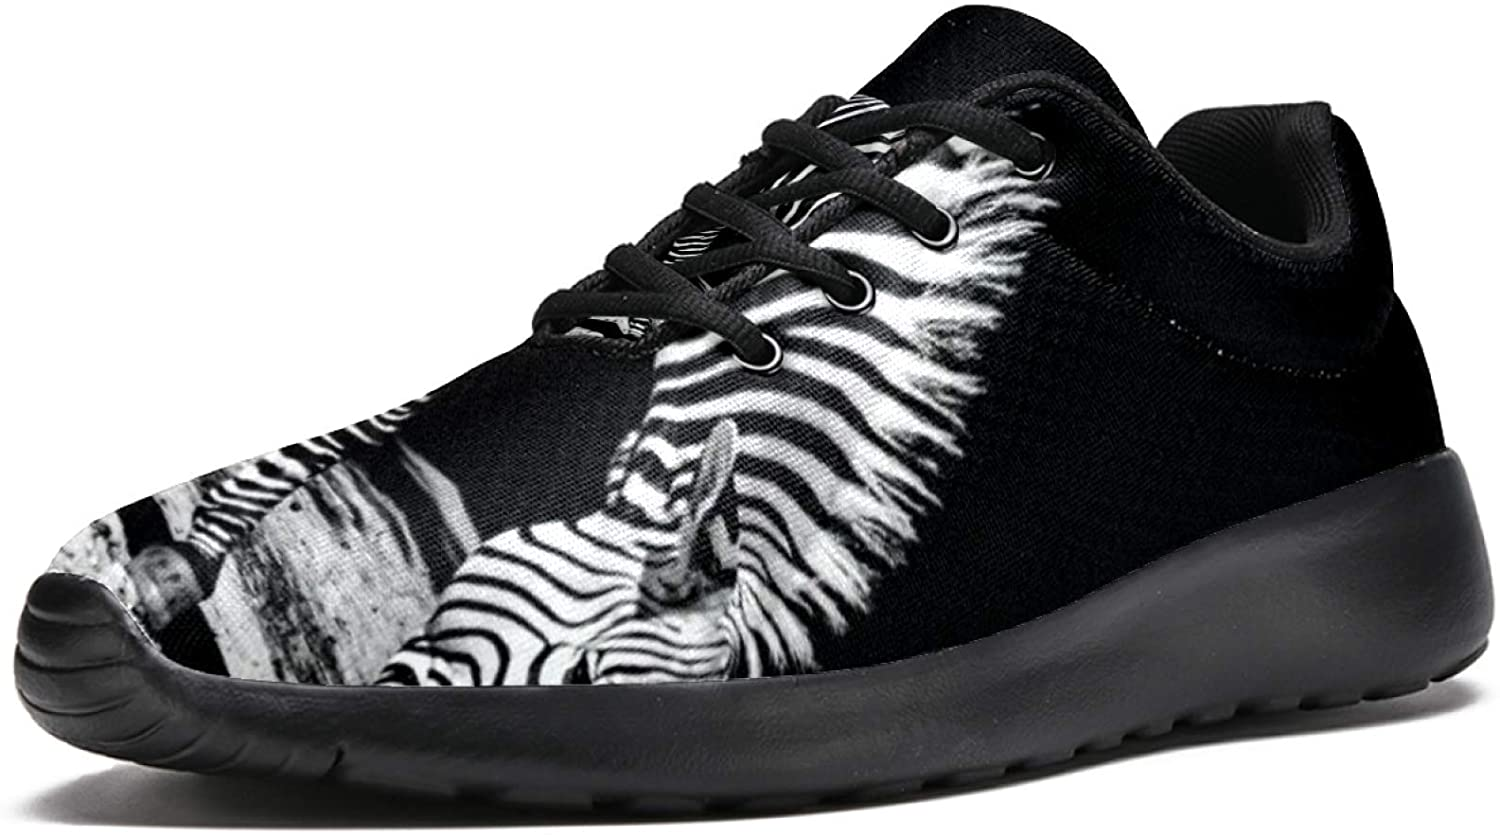 LORVIES Walking Shoes for Men Casual Lace Up Lightweight Running Shoes Zebra Black White Walk Sneaker